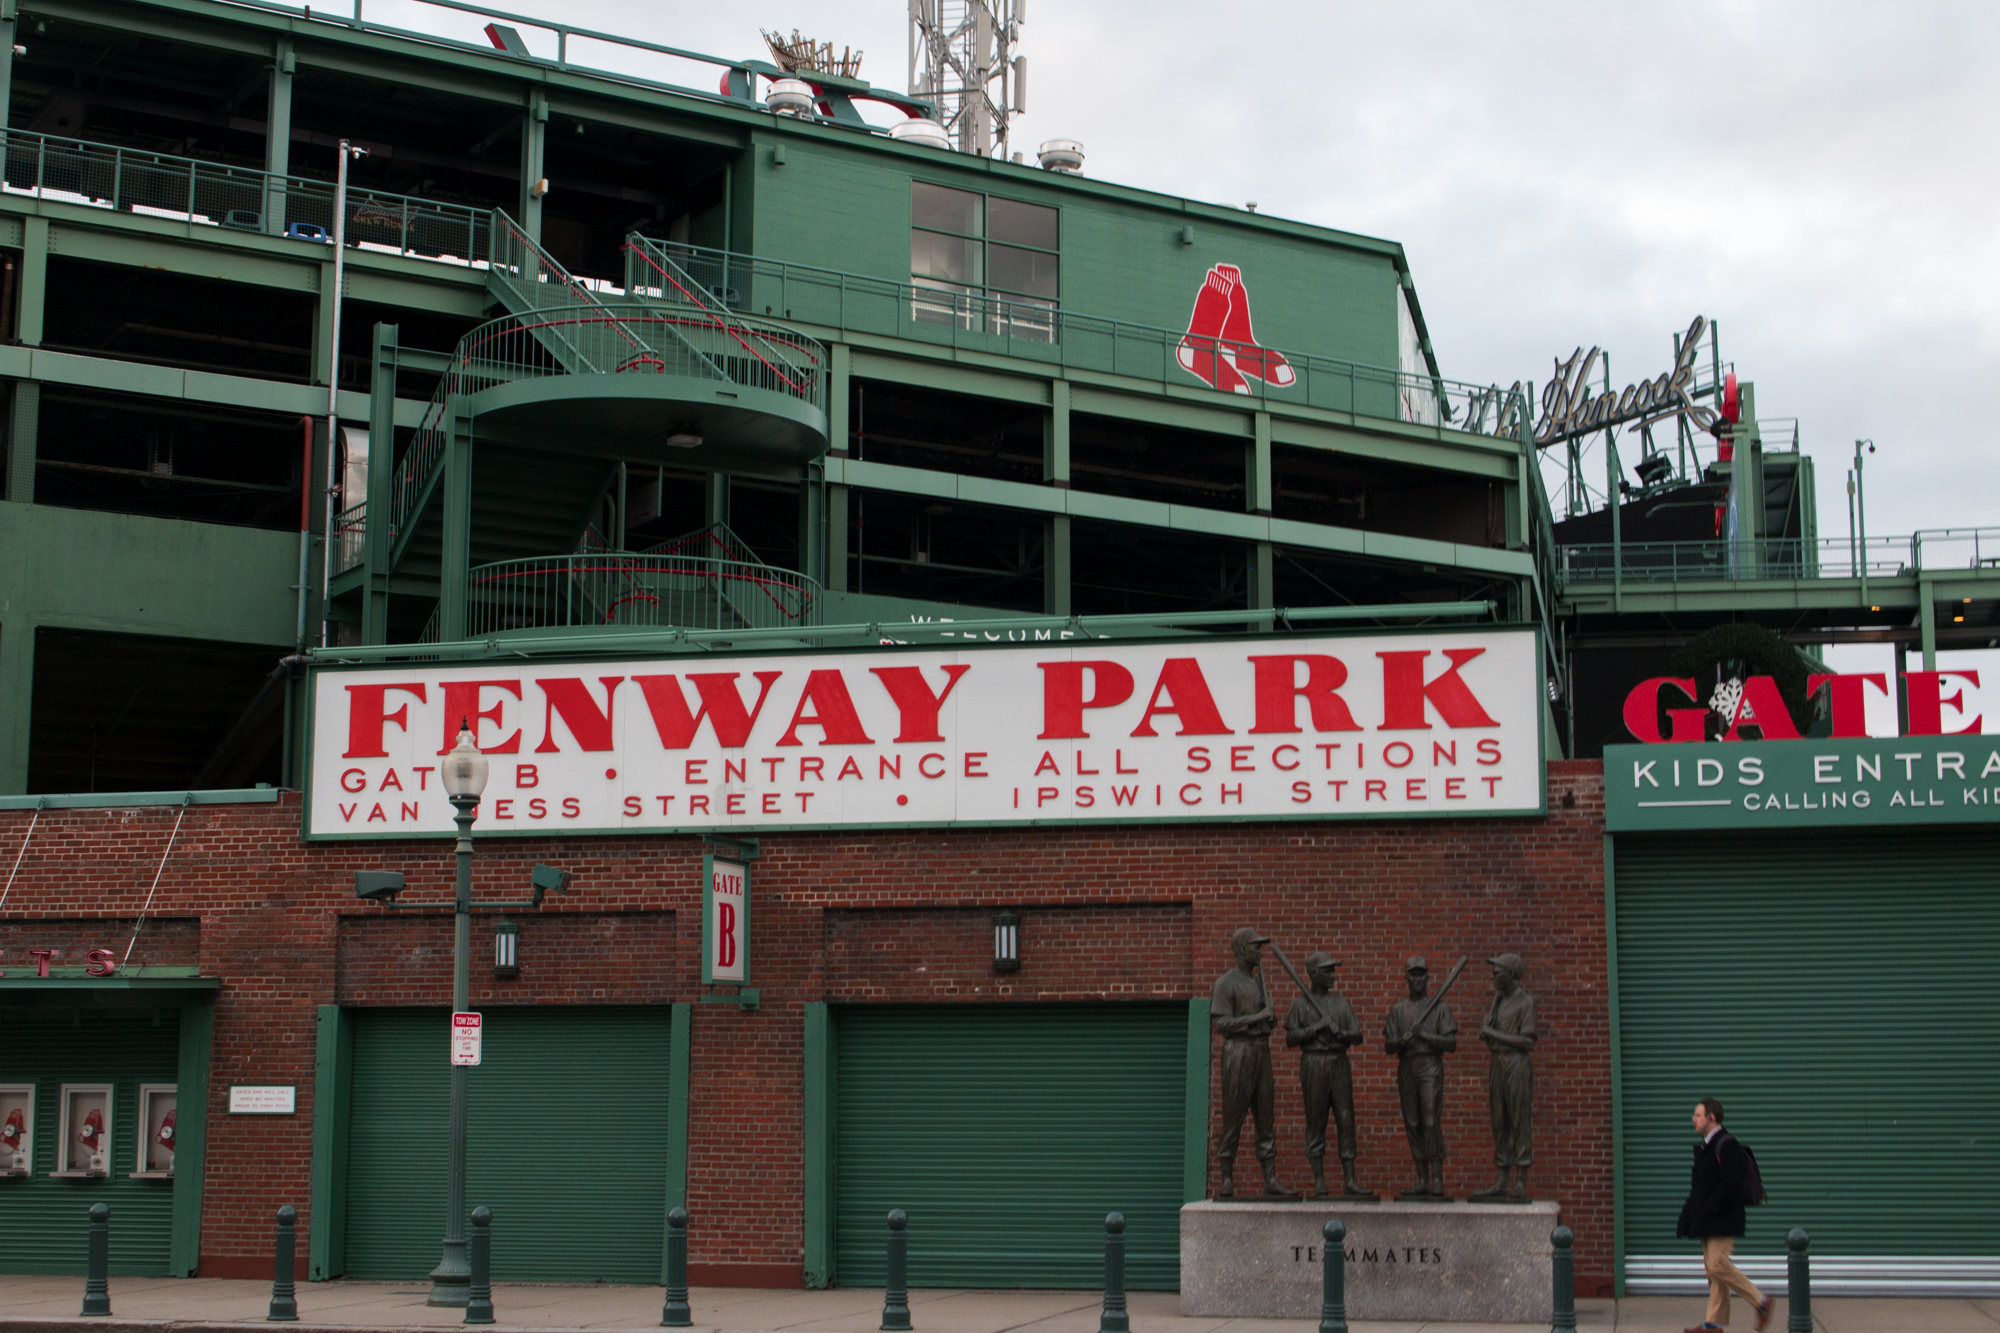 Fenway Park, home of the Boston Red Sox, will host the 135th Harvard-Yale game.